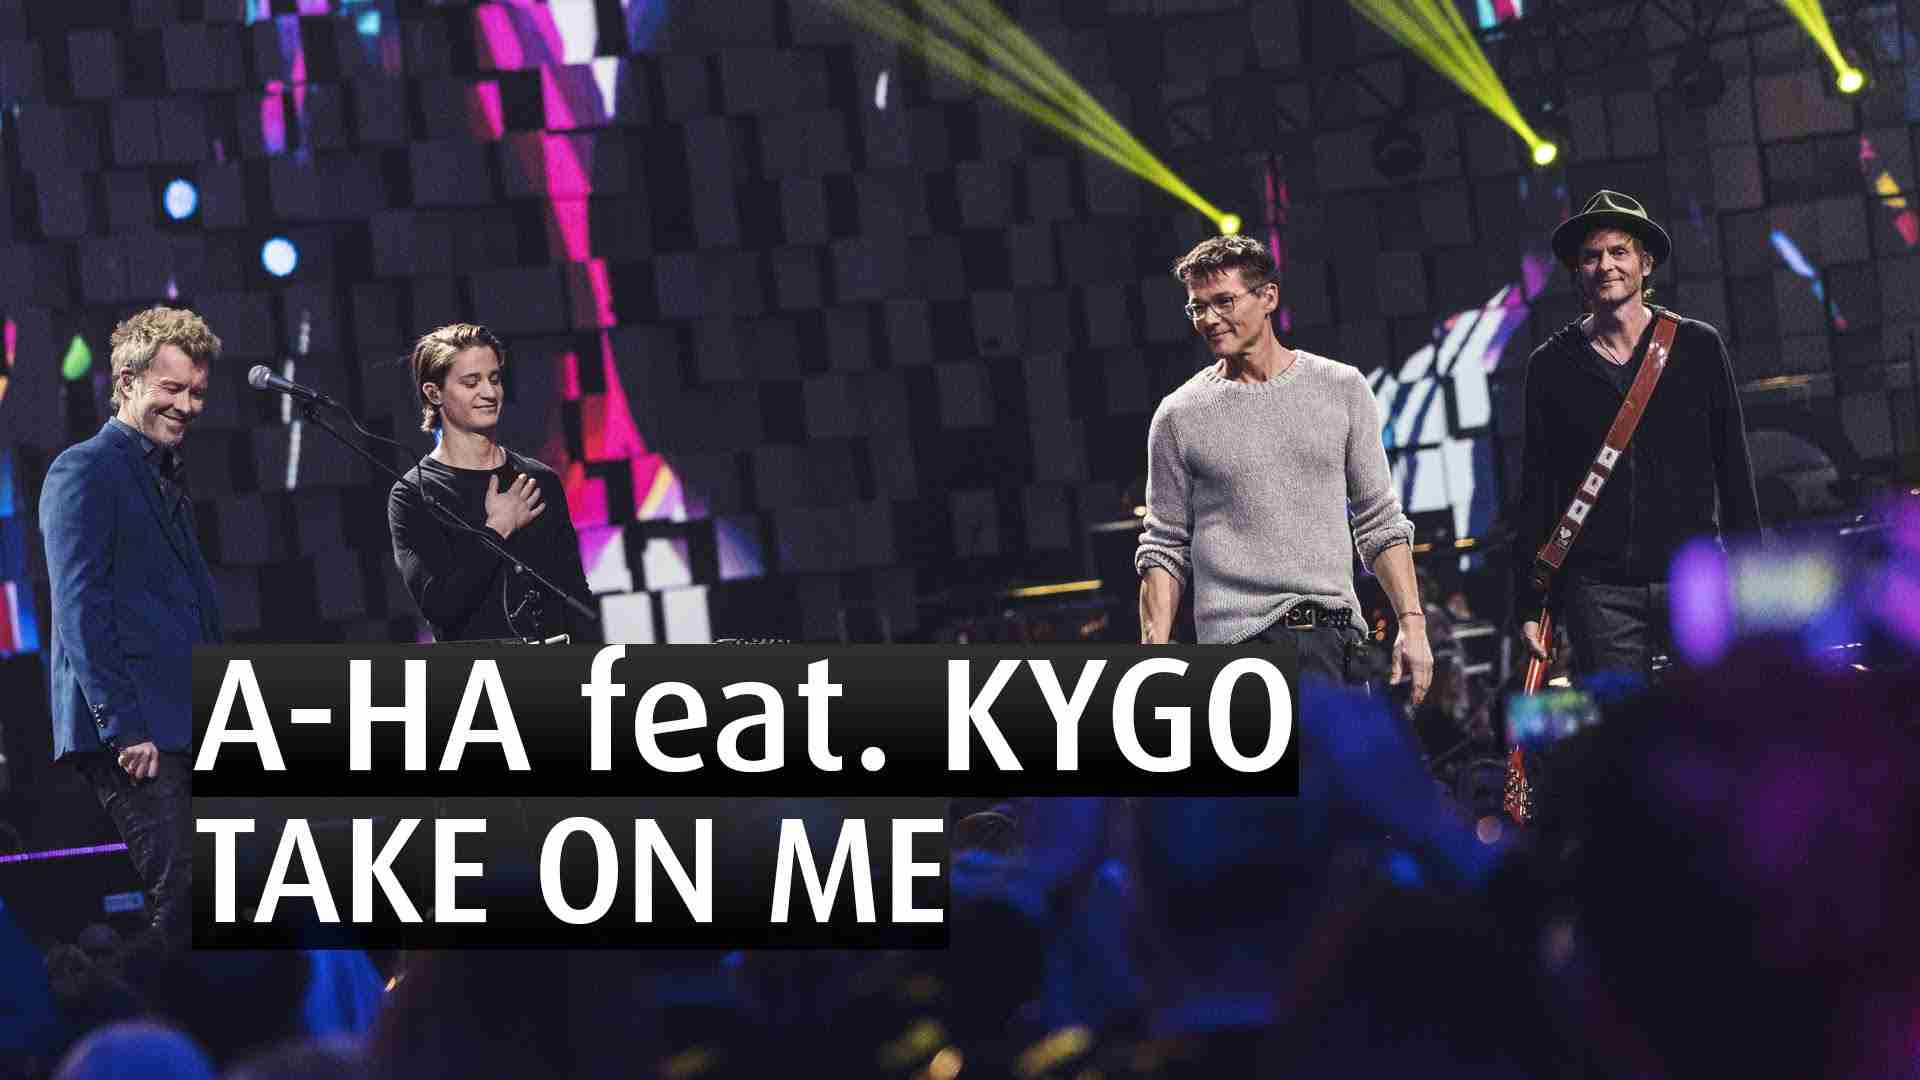 A-HA feat KYGO - TAKE ON ME - EXCLUSIVE - The 2015 Nobel Peace Prize Concert - YouTube